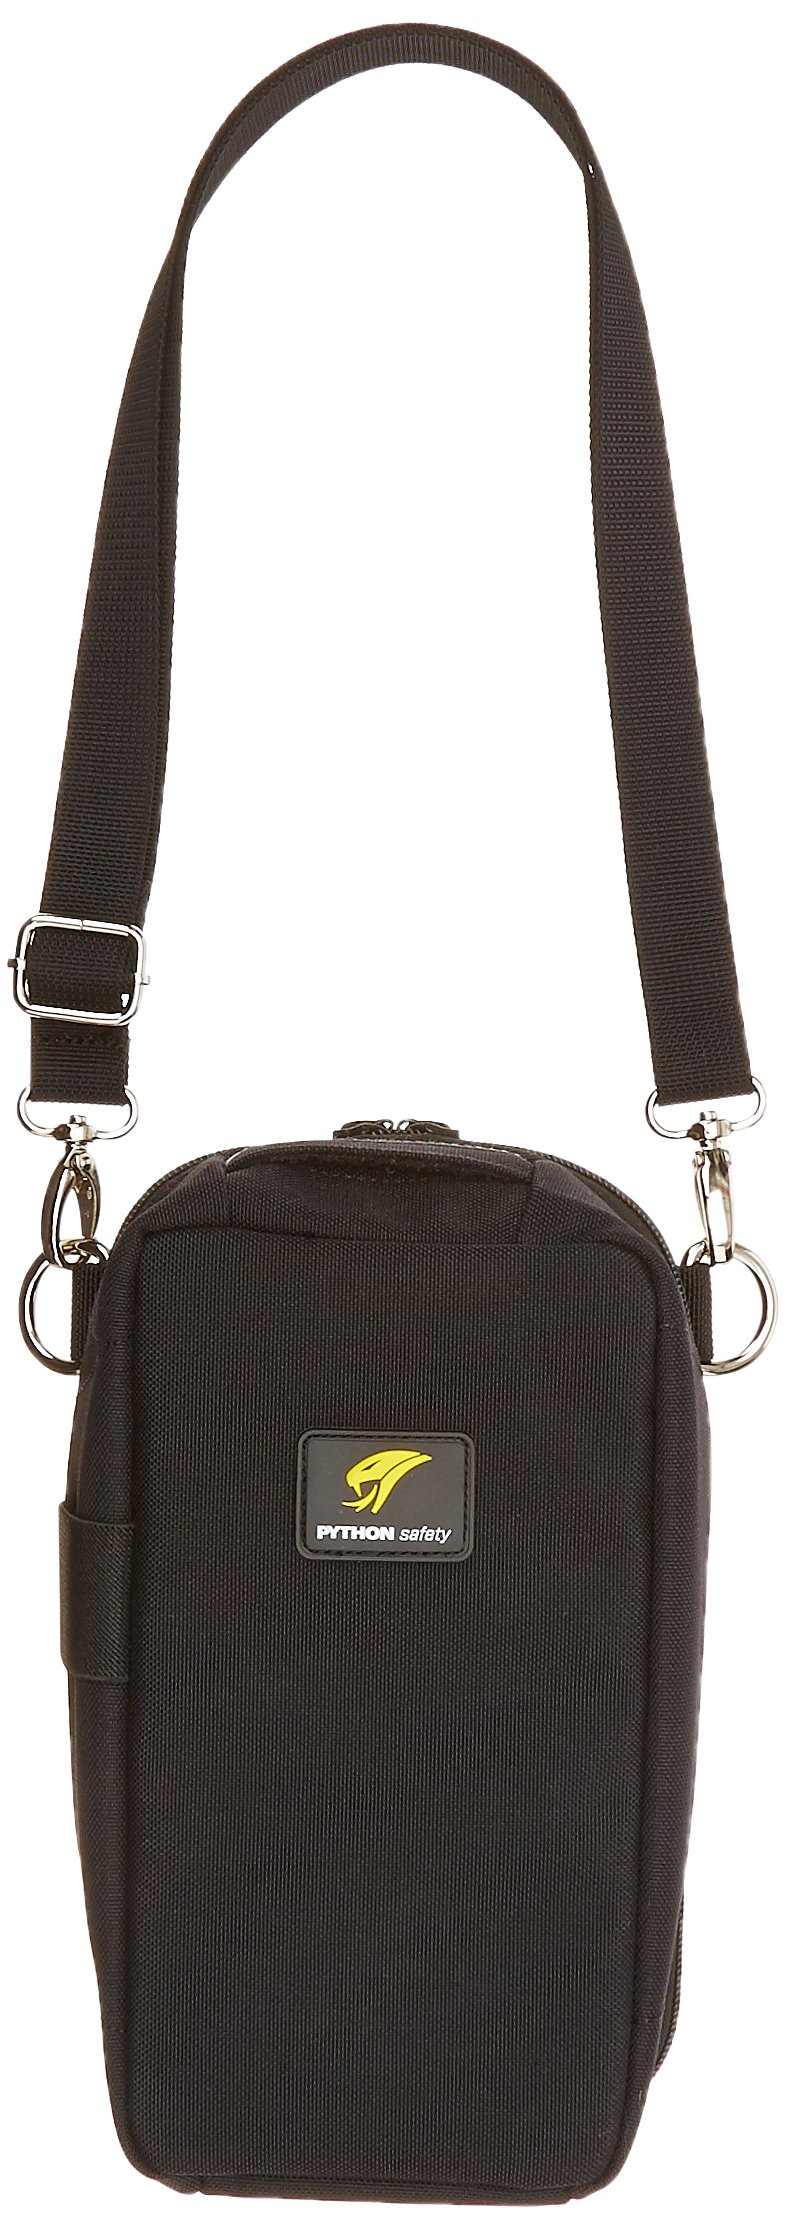 3M DBI-SALA Fall Protection For Tools, 1500131, Inspection Pouch w/Adj Opening, Work Off Chest Or Hip, Use w/Multi-Meters, Air Monitors, and Portable Testing Devices